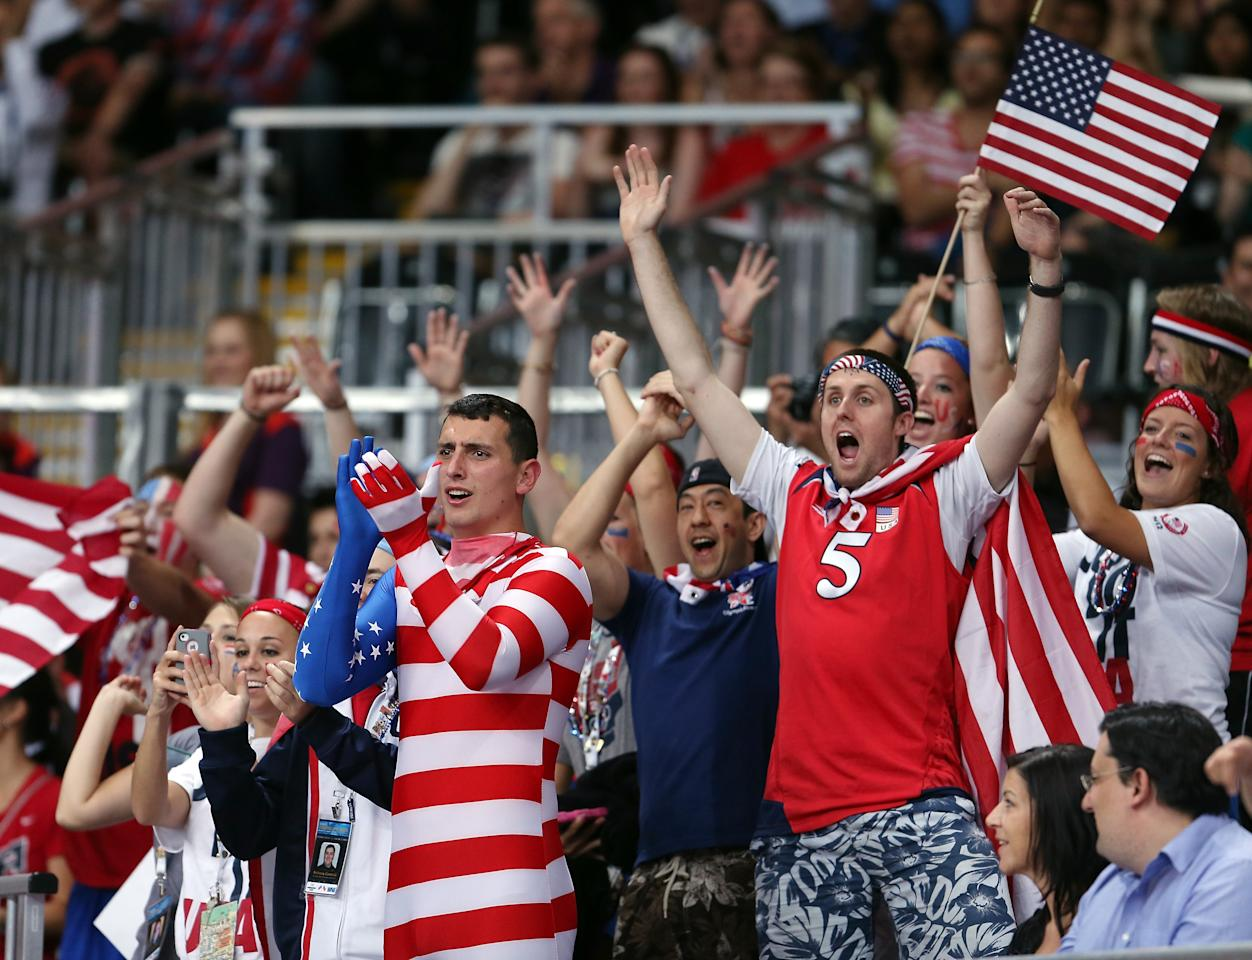 LONDON, ENGLAND - JULY 28:  United States fans cheer on their team as they take on Korea during Women's Volleyball on Day 1 of the London 2012 Olympic Games at Earls Court on July 28, 2012 in London, England.  (Photo by Elsa/Getty Images)